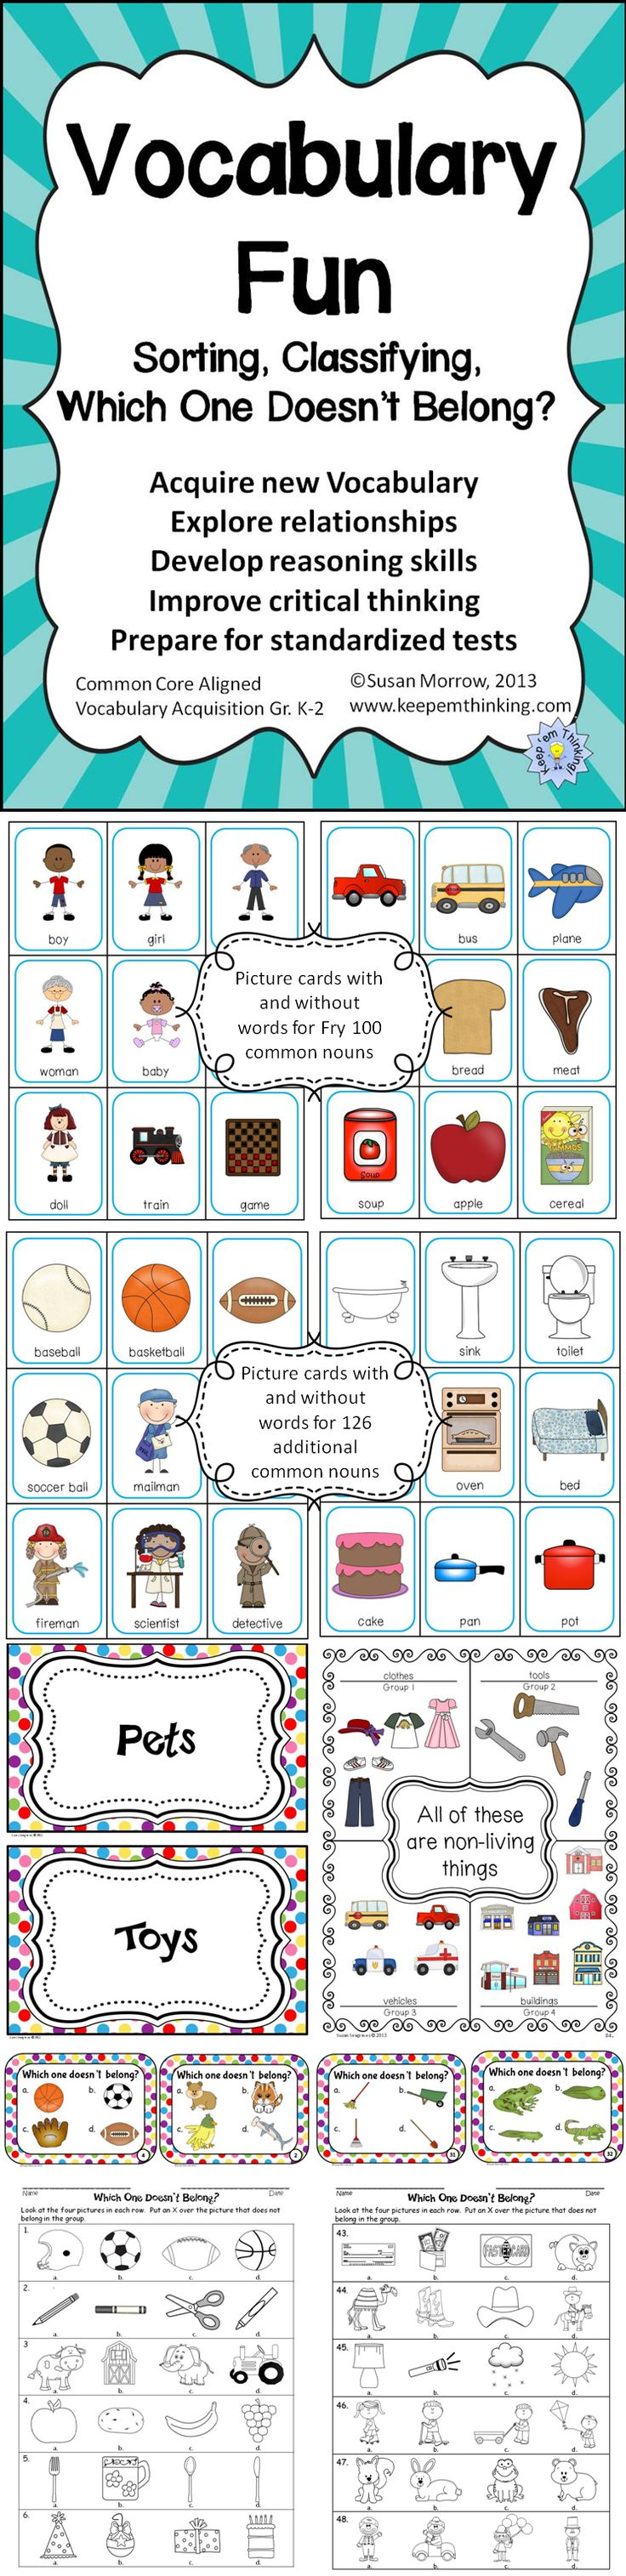 264 best vocabulary building images on pinterest for Construction vocabulary